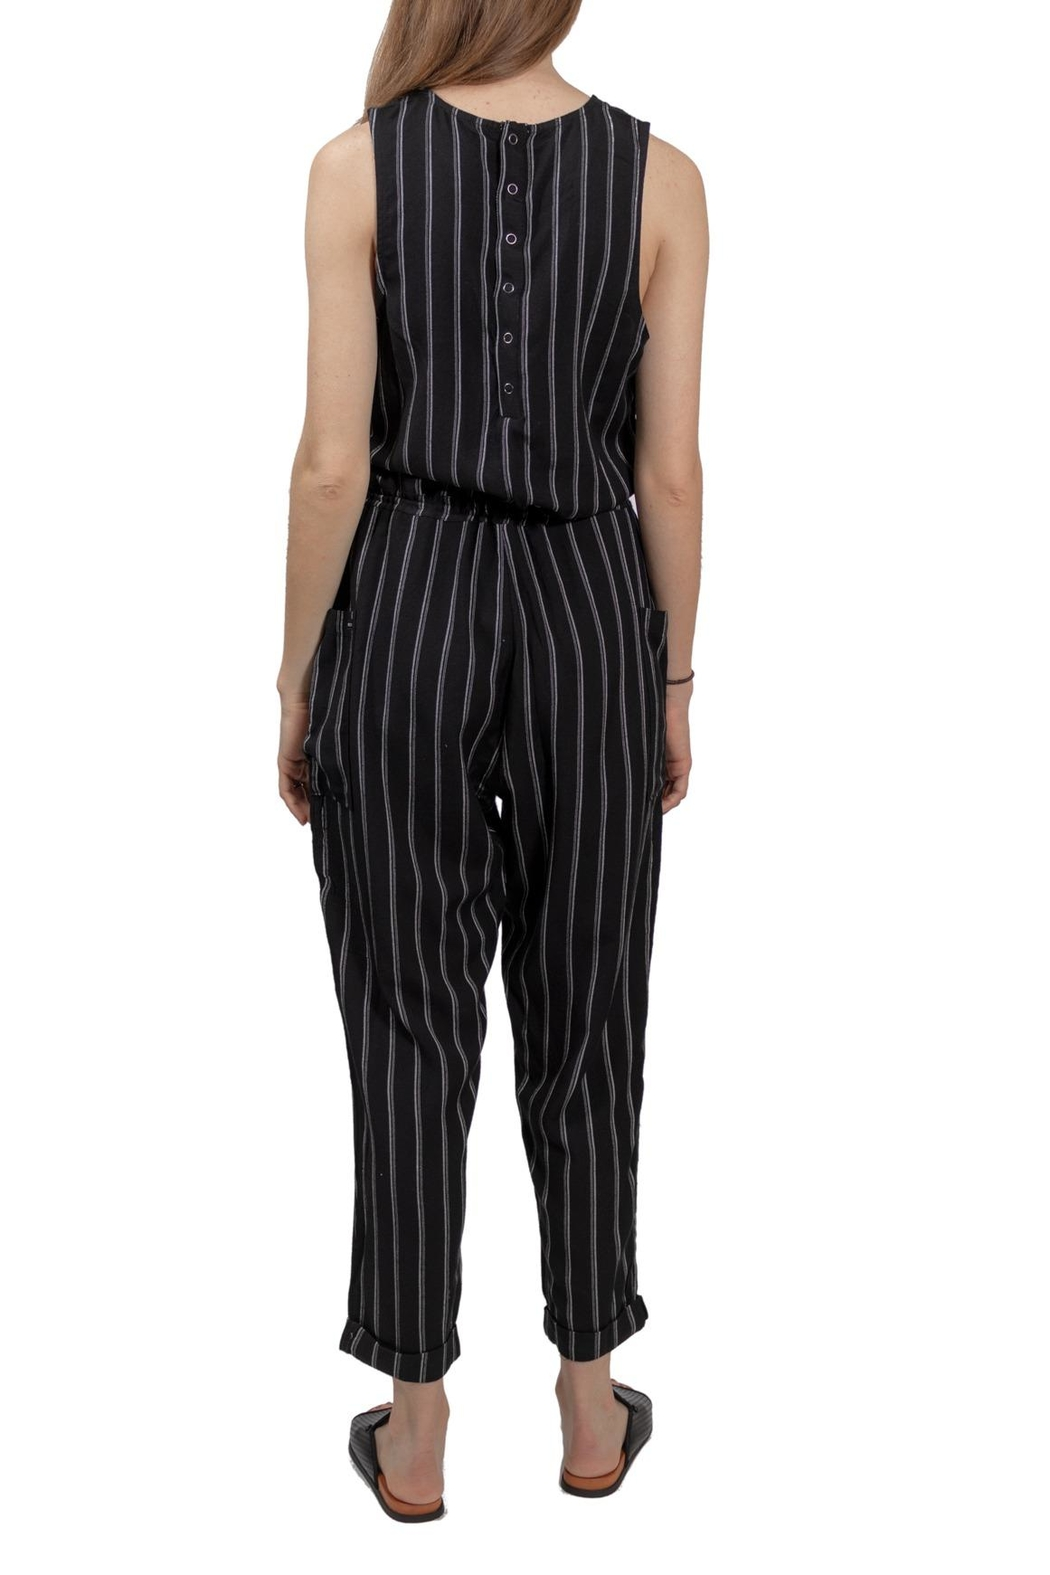 RVCA Pop Out Jumpsuit - Back Cropped Image